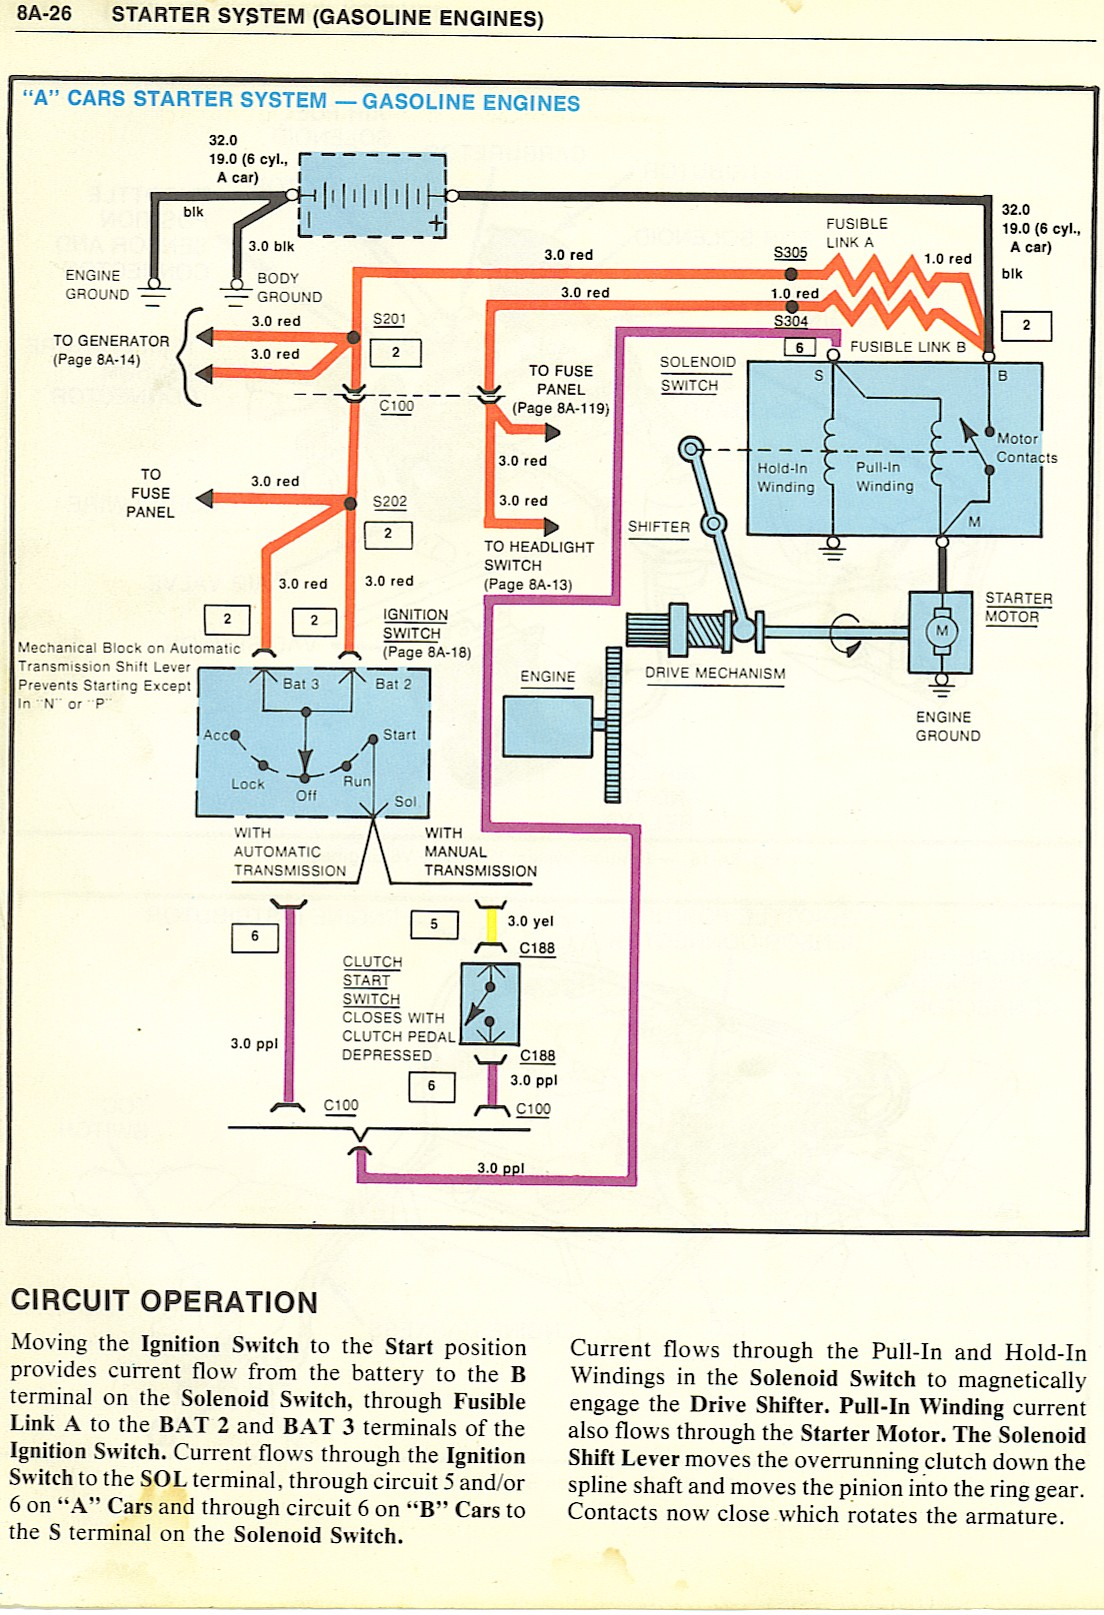 sbc wiring diagram motorcycle turn signal 1979 chevy monte carlo 1972